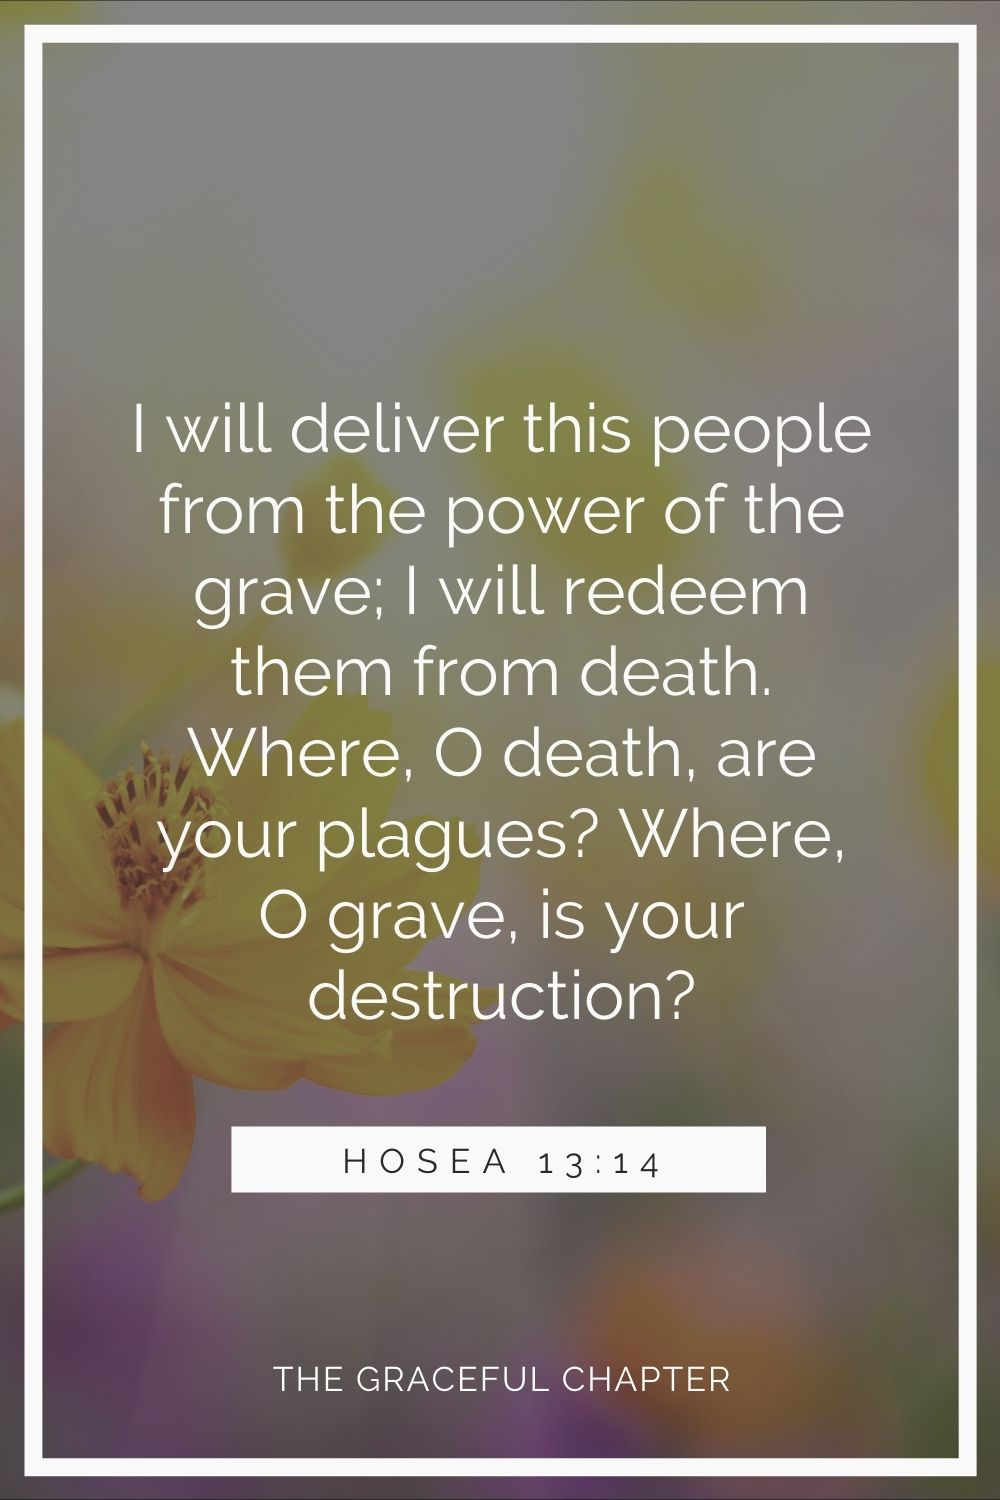 I will deliver this people from the power of the grave; I will redeem them from death. Where, O death, are your plagues? Where, O grave, is your destruction? Hosea 13:14